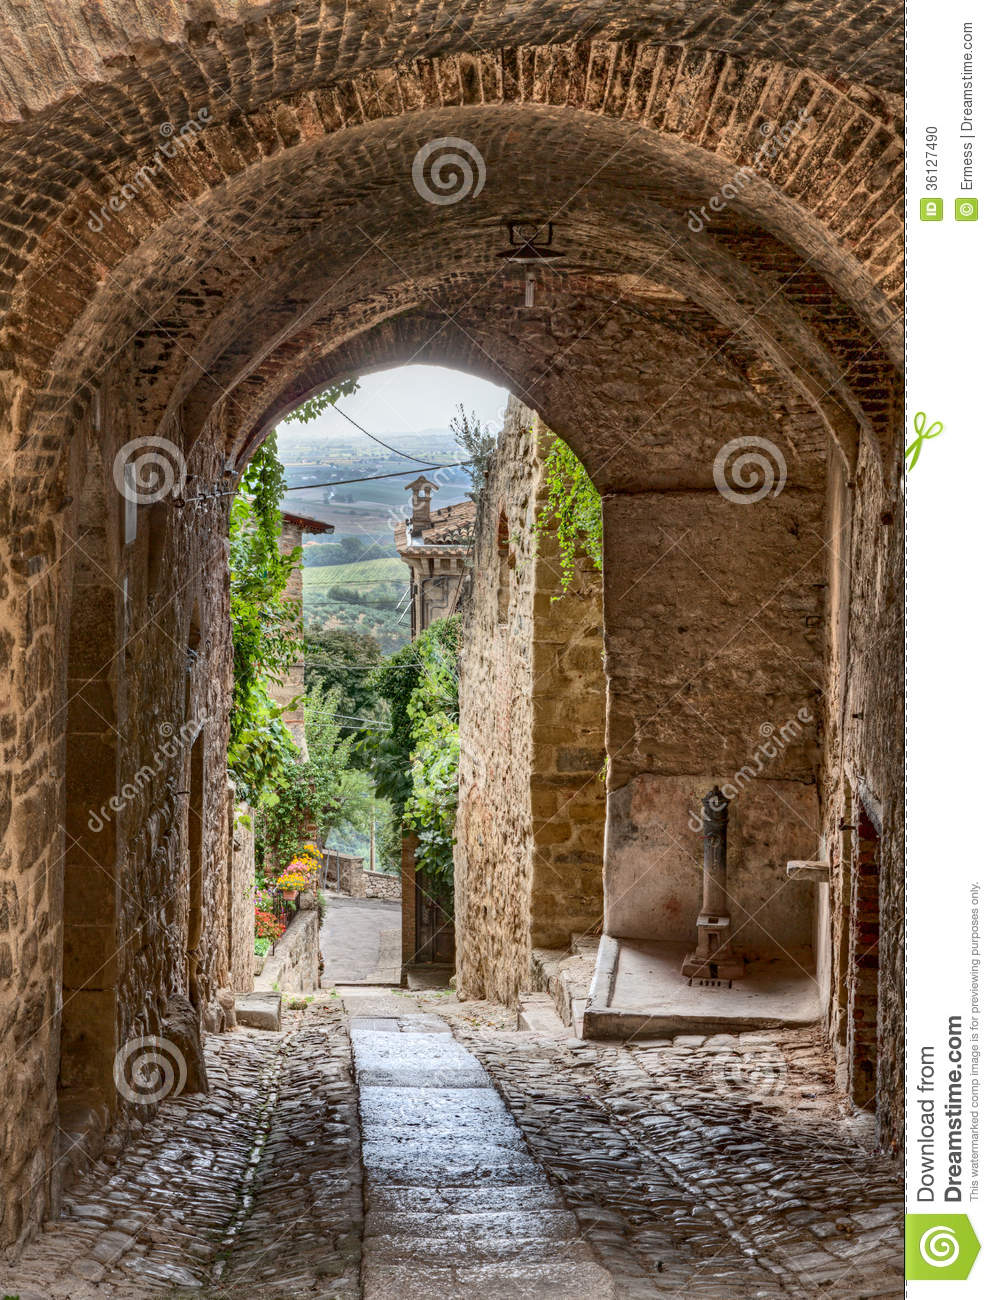 Gualdo Cattaneo Italy  city pictures gallery : ... alley with archway in the ancient town Gualdo Cattaneo, Umbria, Italy